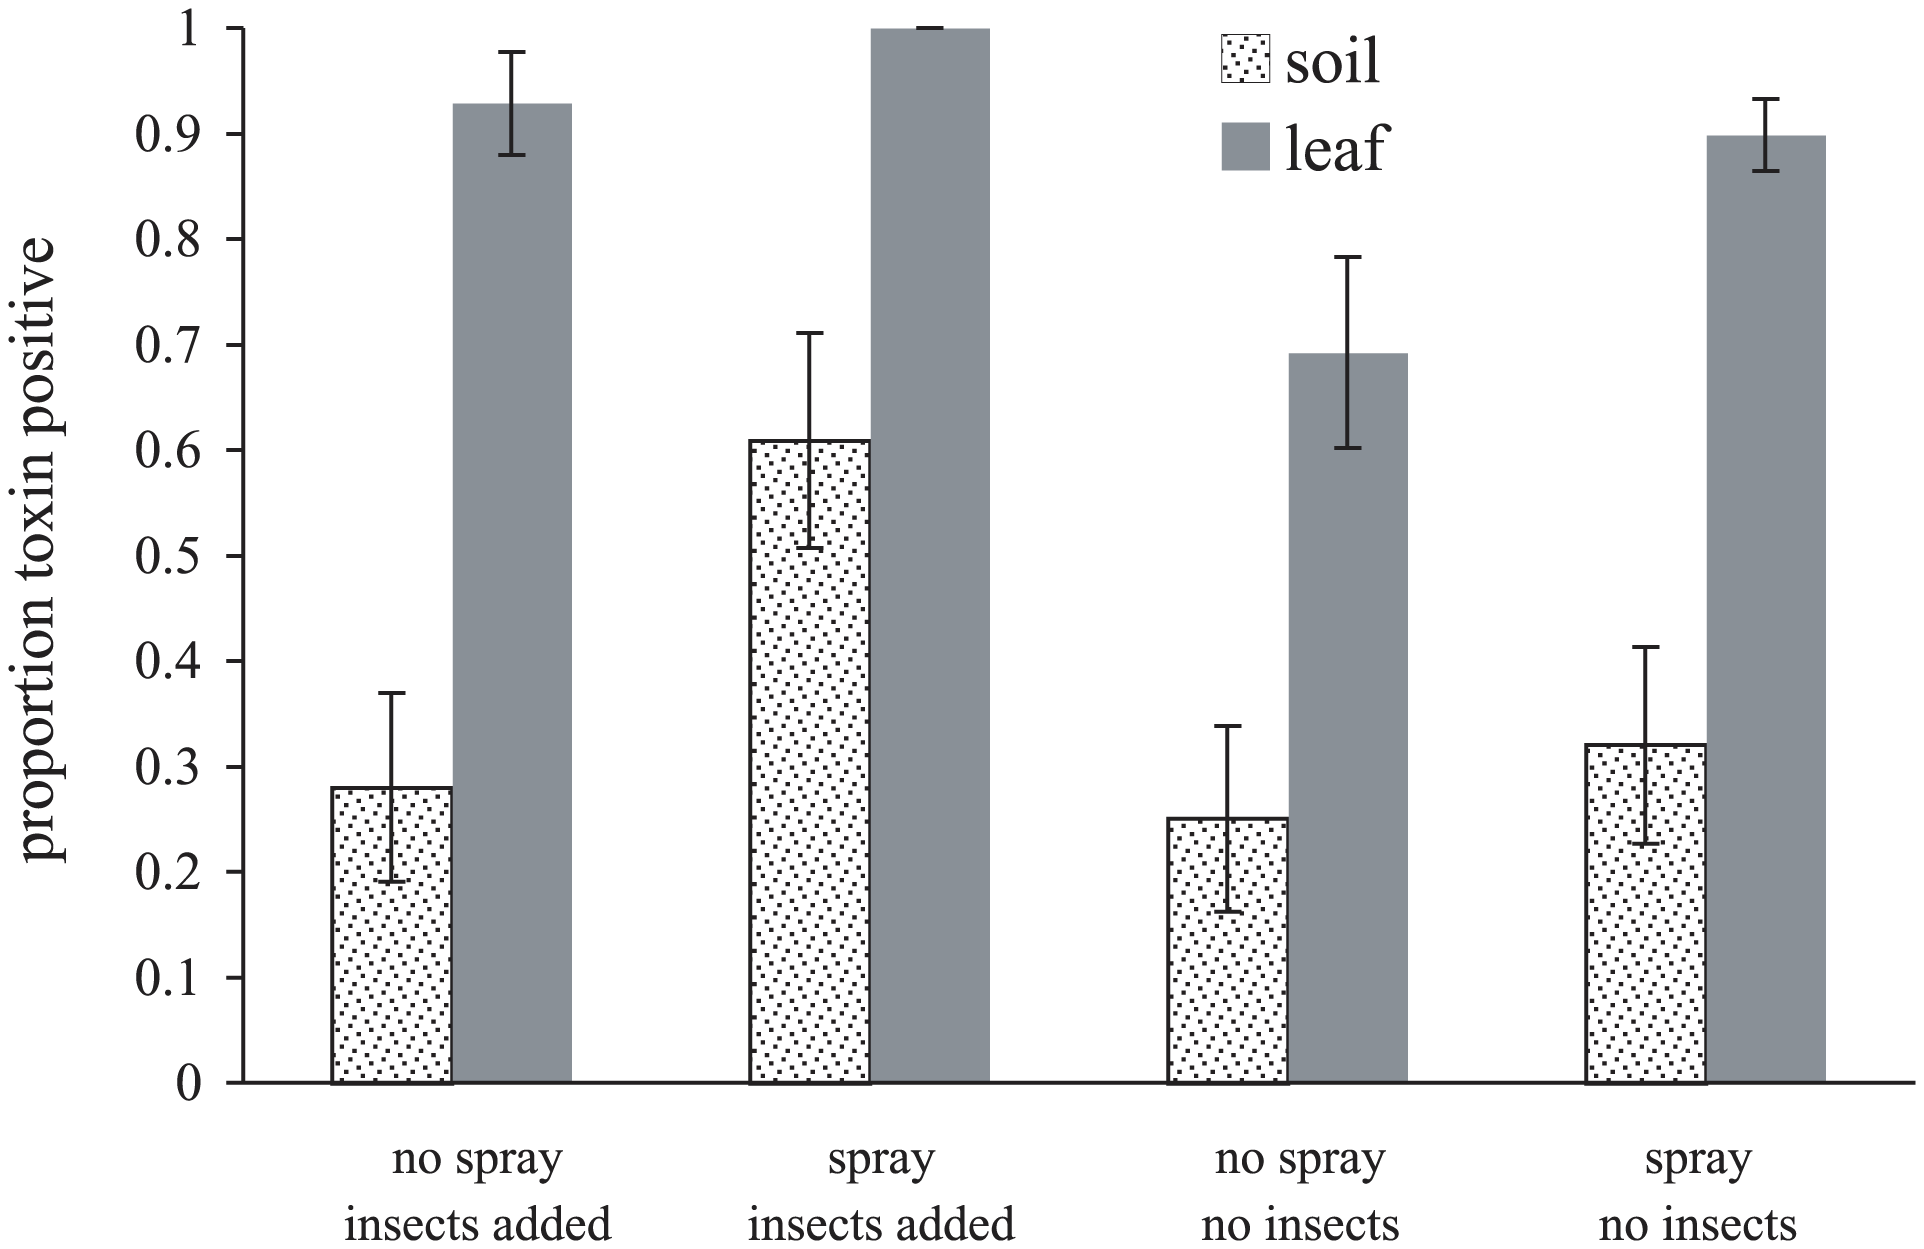 Habitat (sample origin) and experimental treatment affect the proportion of sampled <i>Bacillus cereus</i> isolates expressing Cry toxin parasporal inclusions.